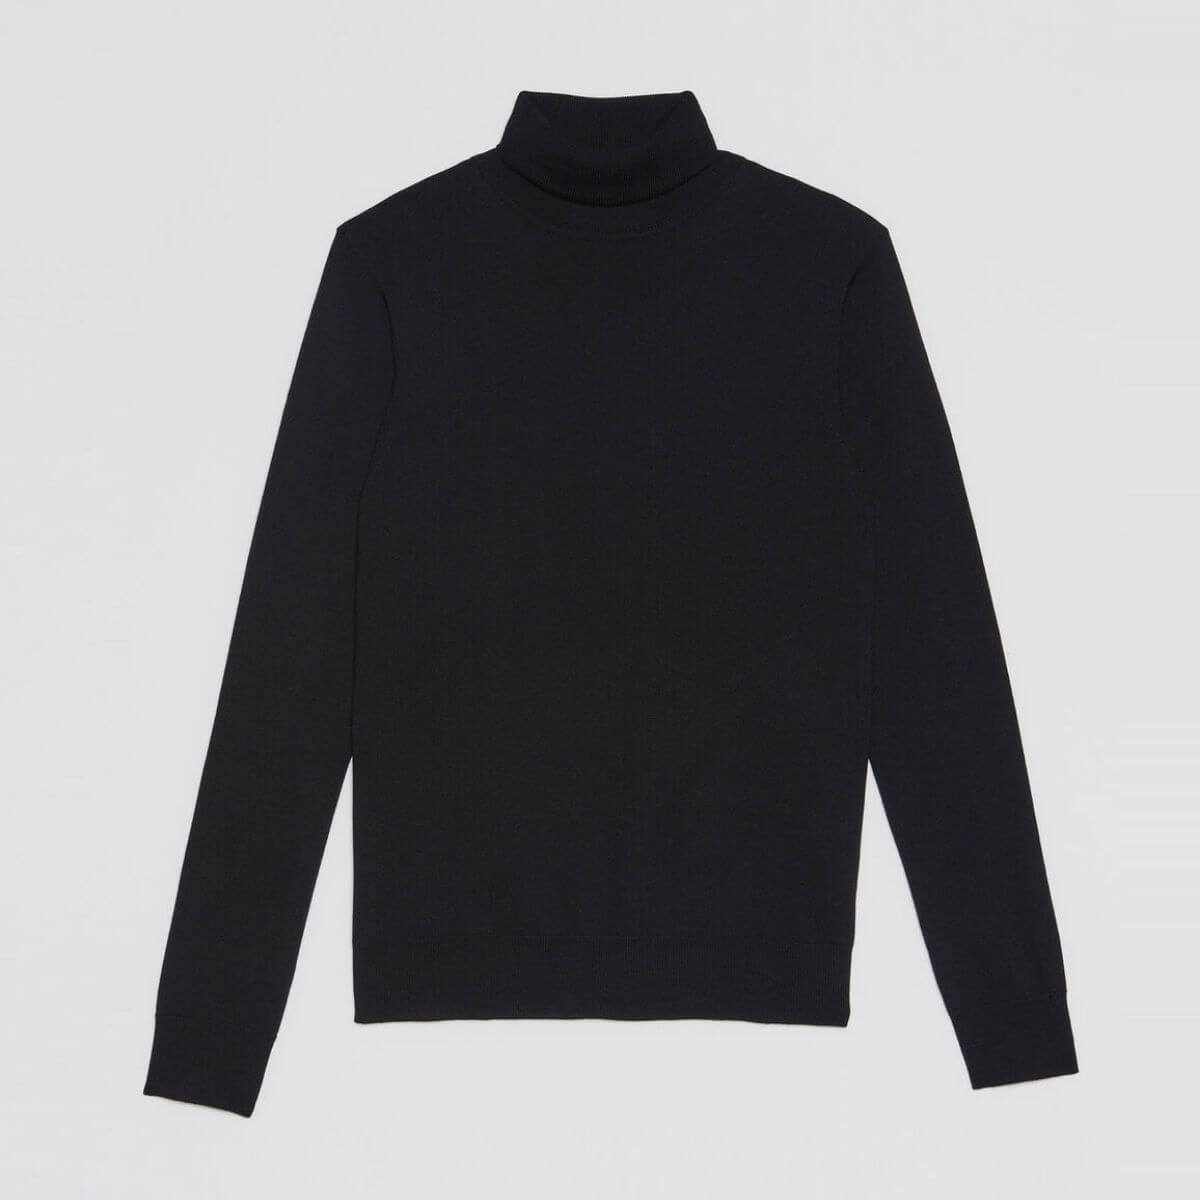 Black turtleneck sweater by Sandro Paris.